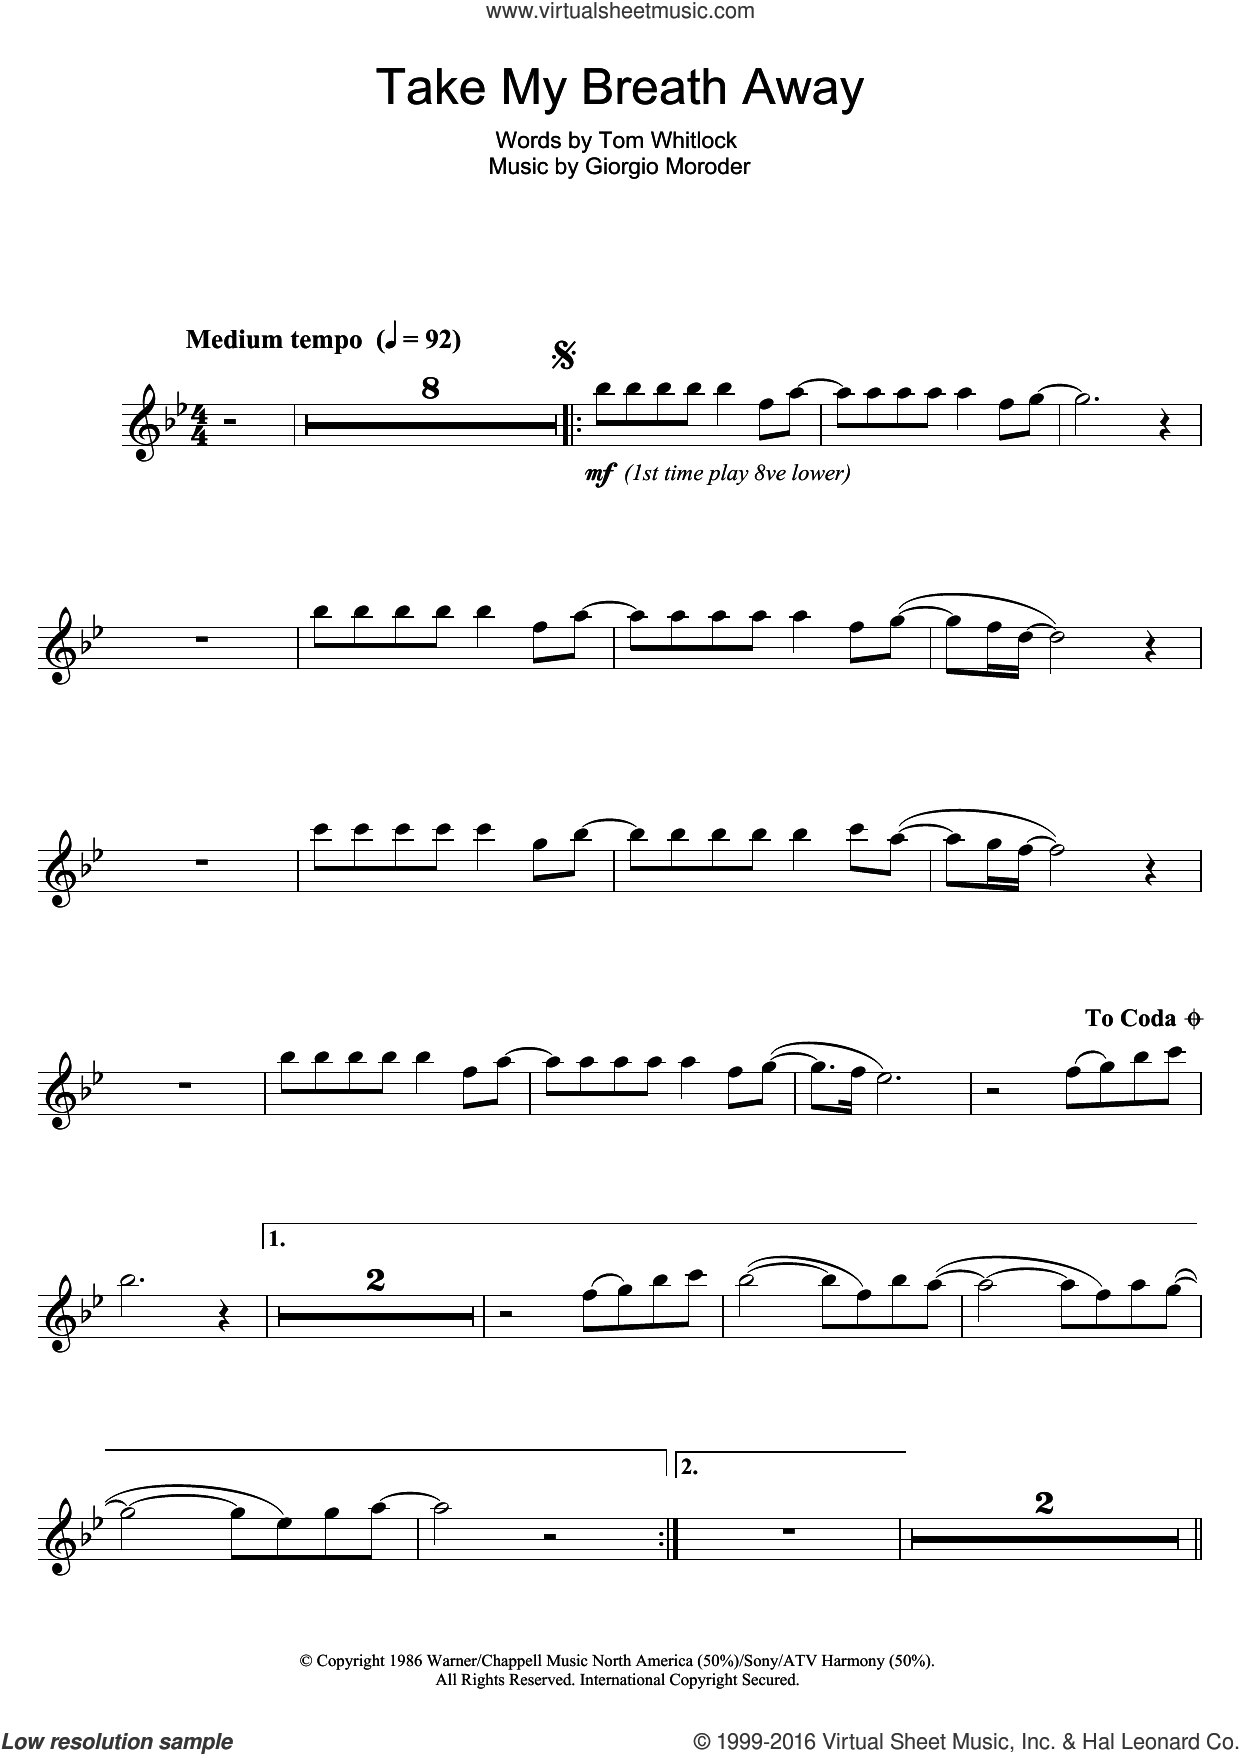 Take My Breath Away sheet music for clarinet solo by Giorgio Moroder, Irving Berlin and Tom Whitlock, intermediate skill level